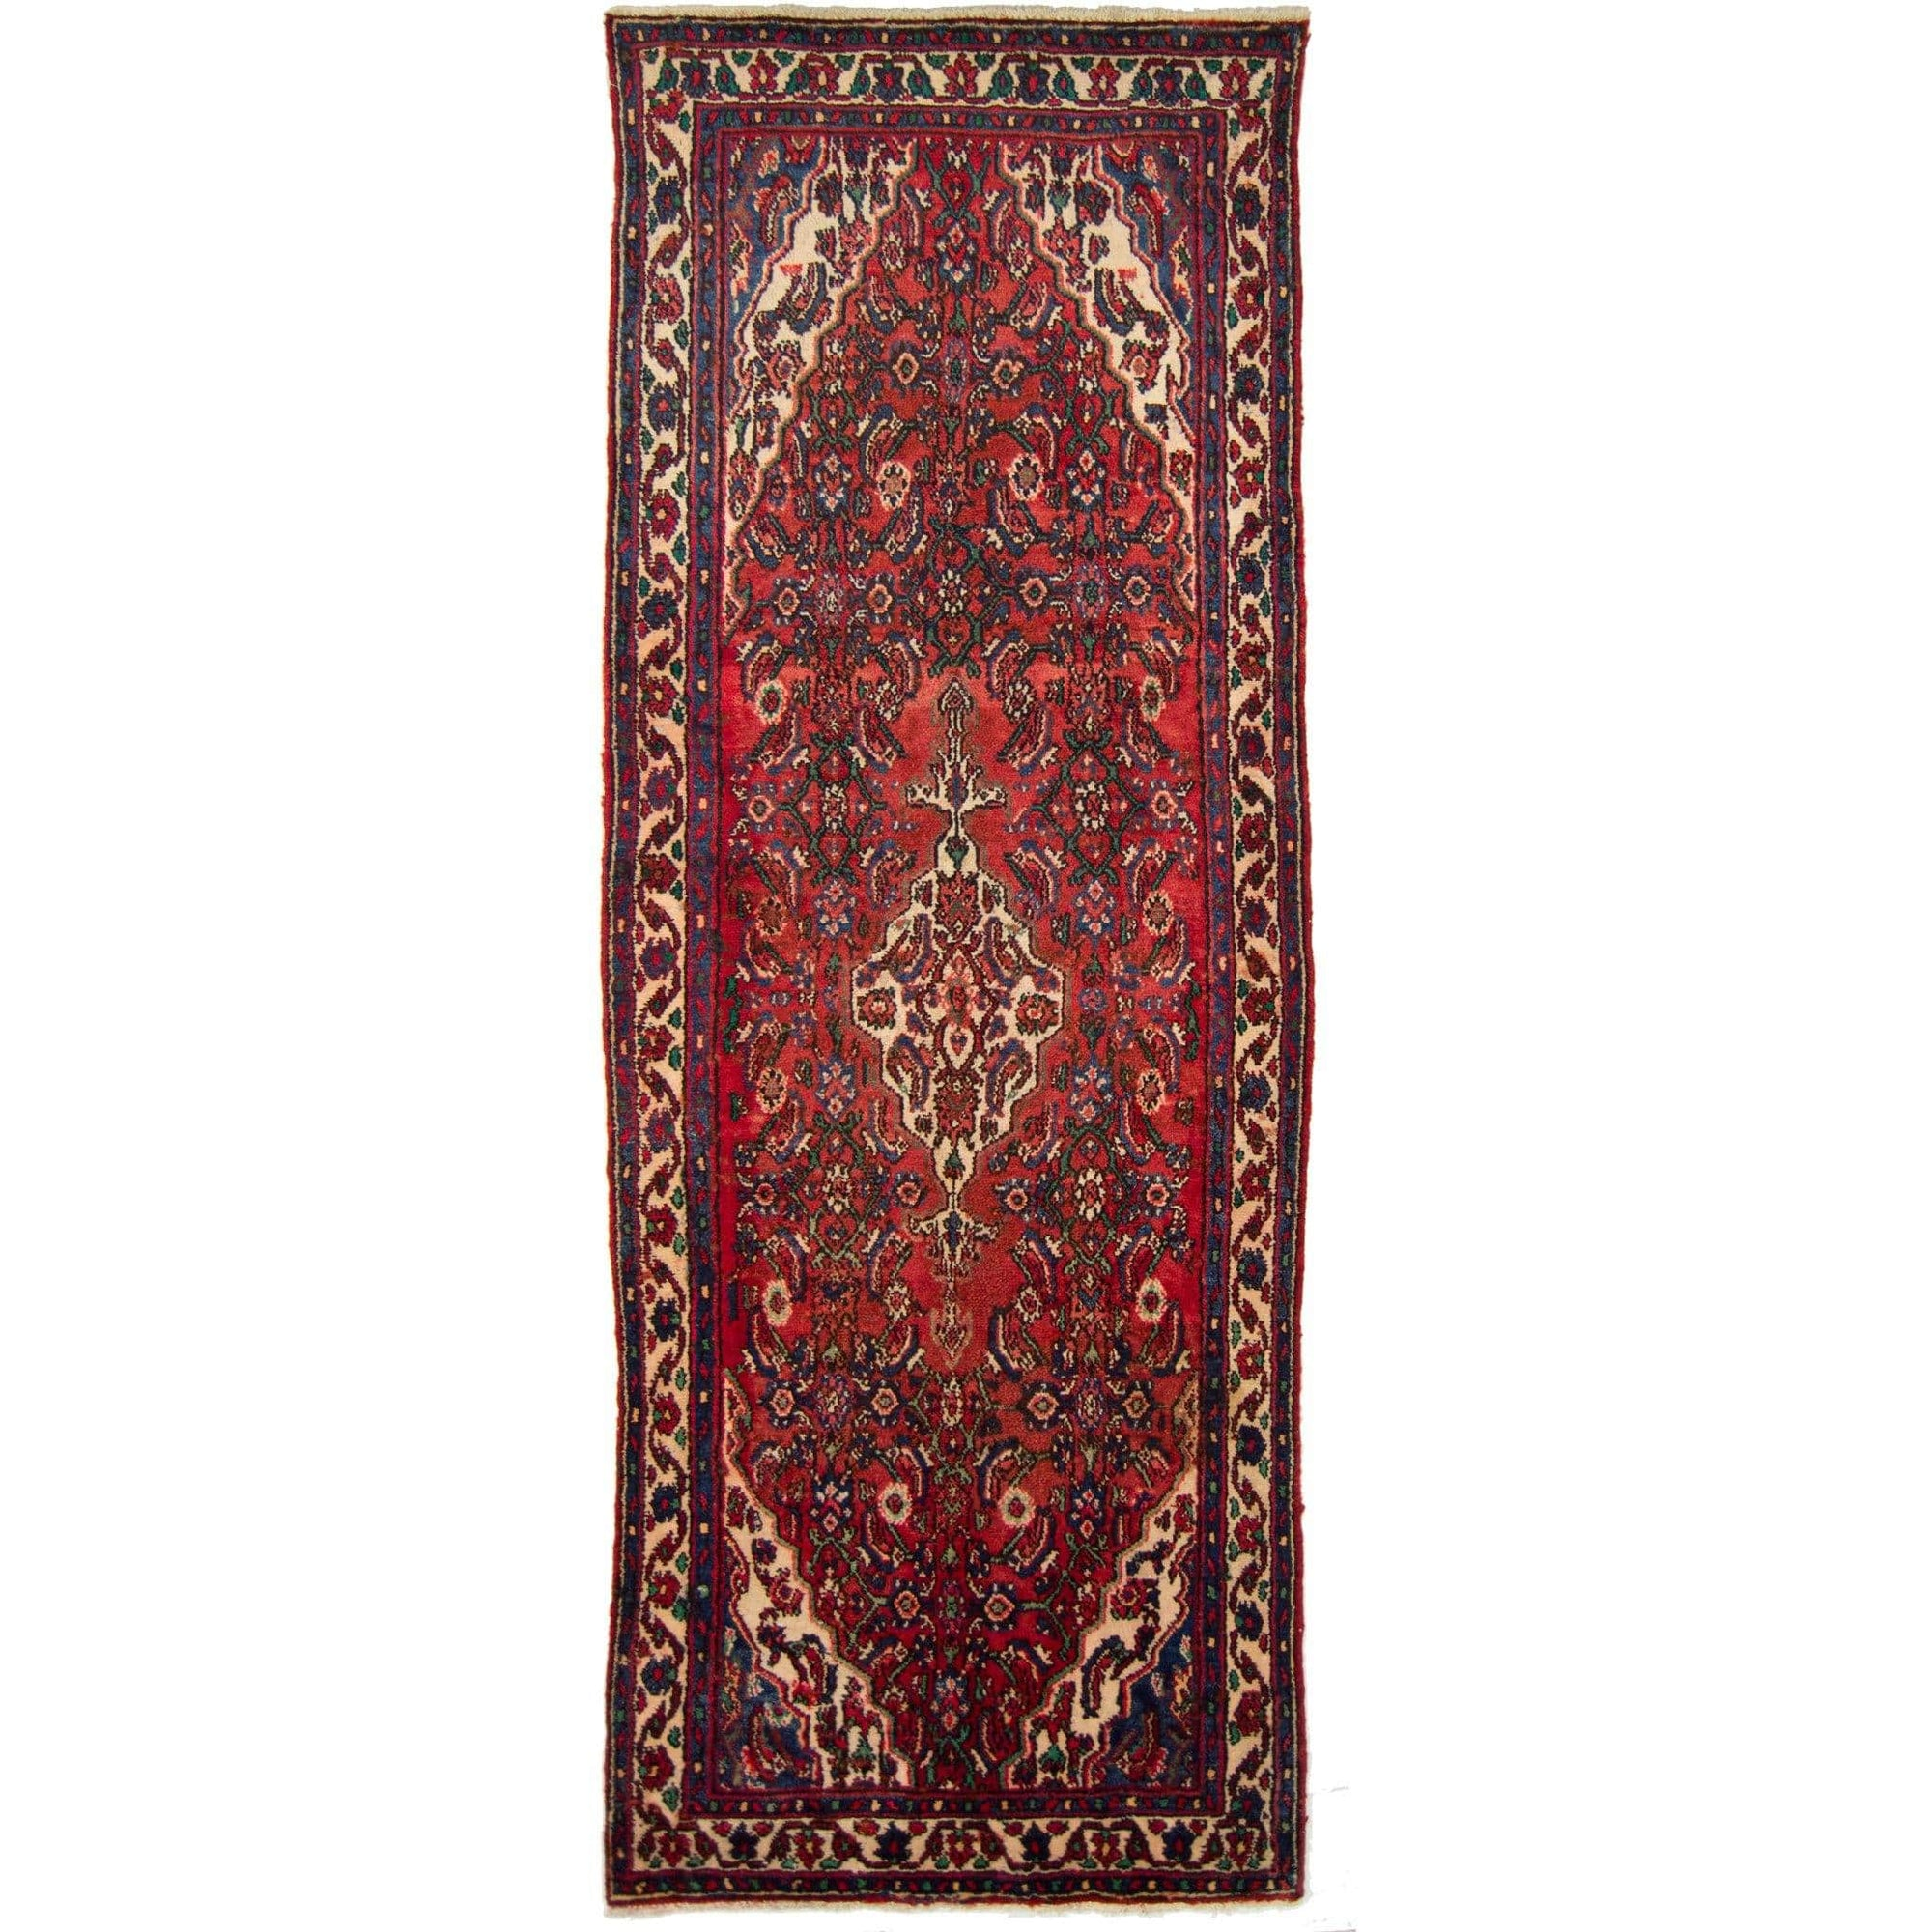 Authentic Tribal Hand-knotted Persian Hamadan Runner 110cm x 297cm Persian-Rug | House-of-Haghi | NewMarket | Auckland | NZ | Handmade Persian Rugs | Hand Knotted Persian Rugs